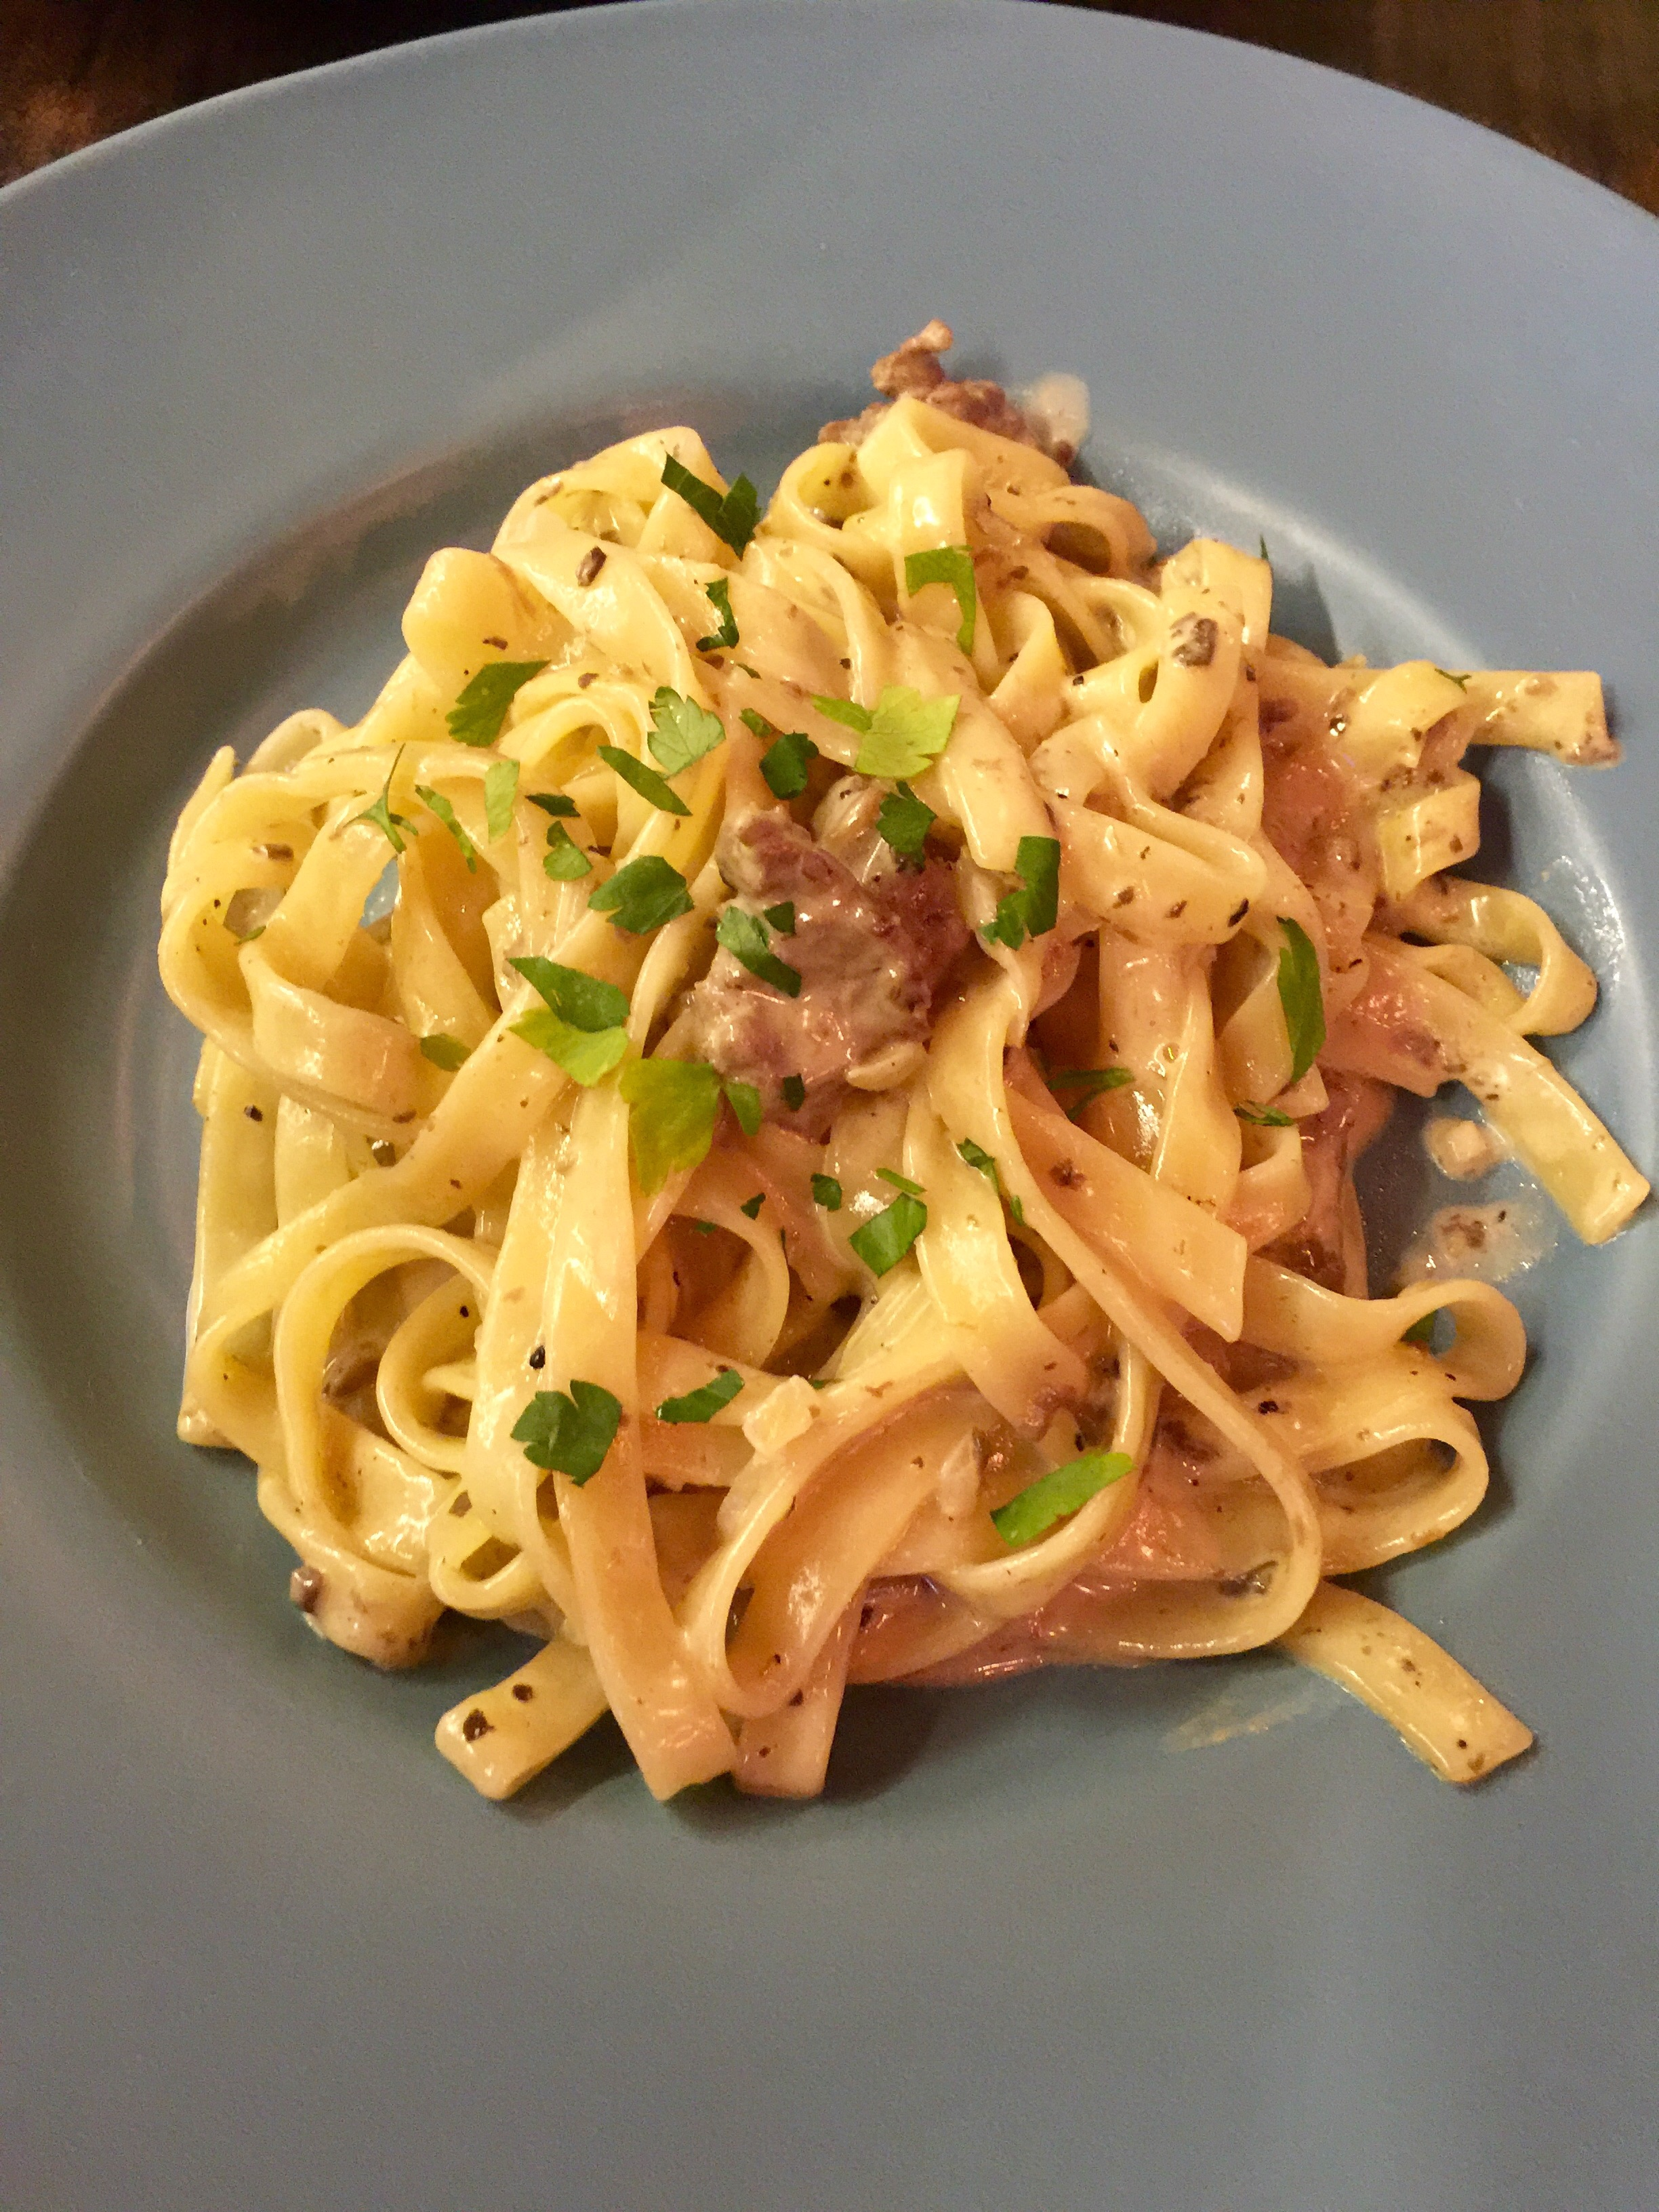 Manzo - Pasta cooked with beef and lightly drizzled in truffle oil